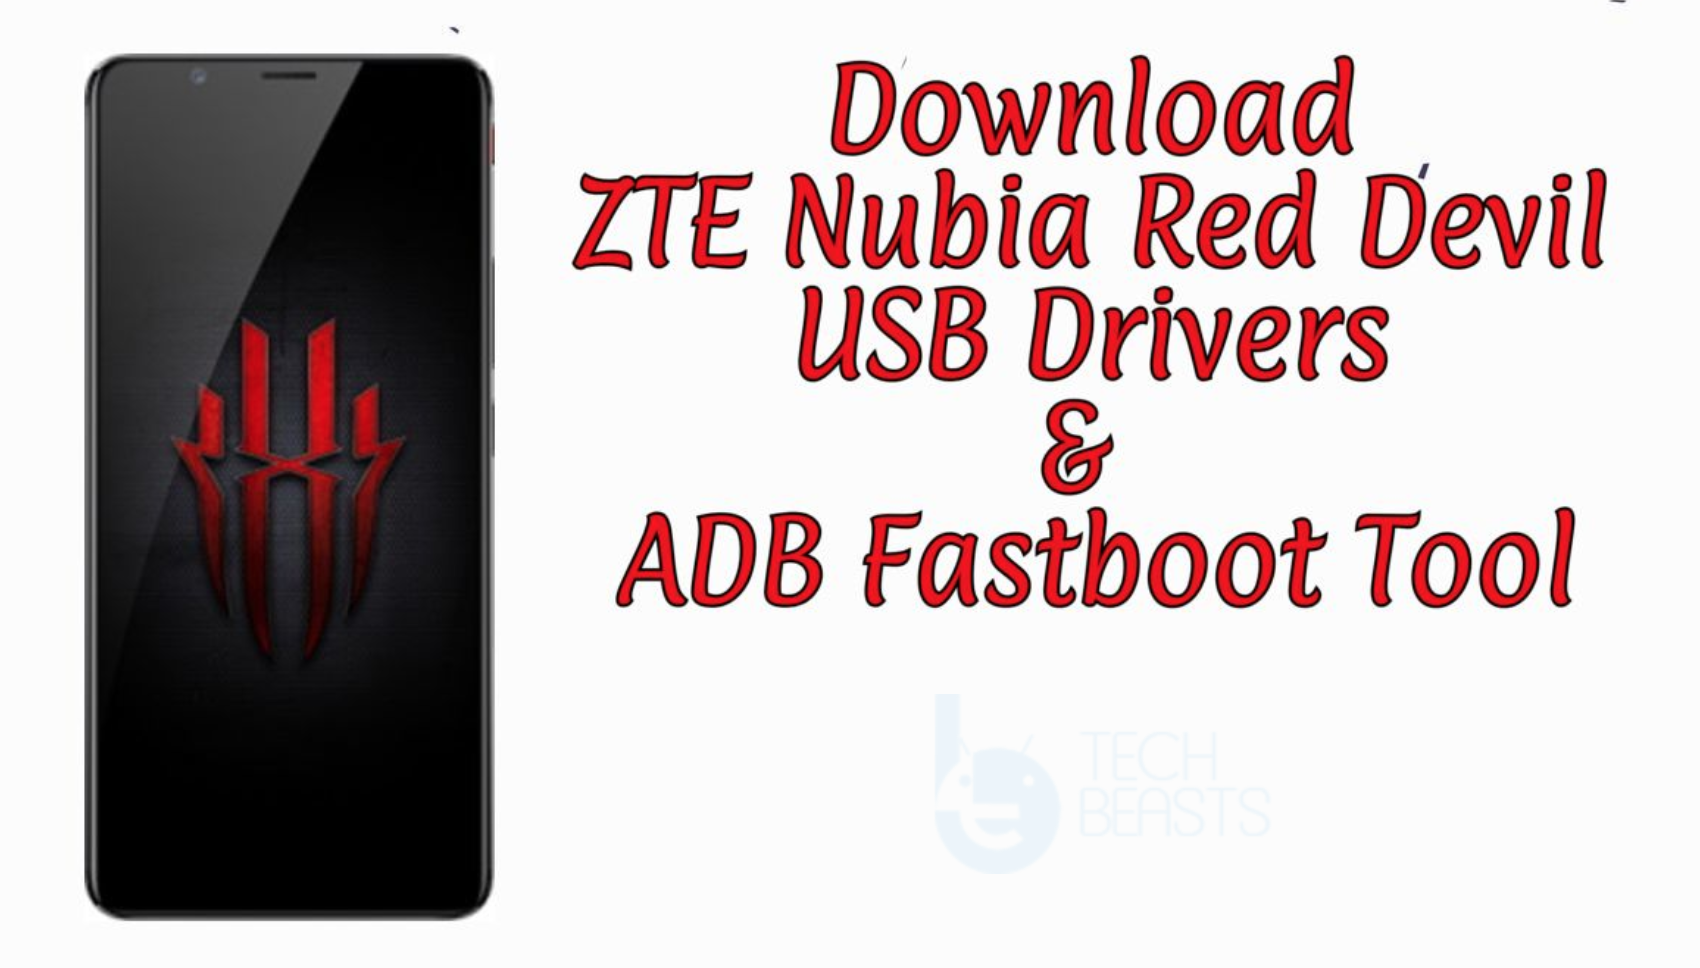 ZTE Nubia Red Devil Stock Wallpapers: Download ZTE Nubia Red Devil USB Drivers And ADB Fastboot